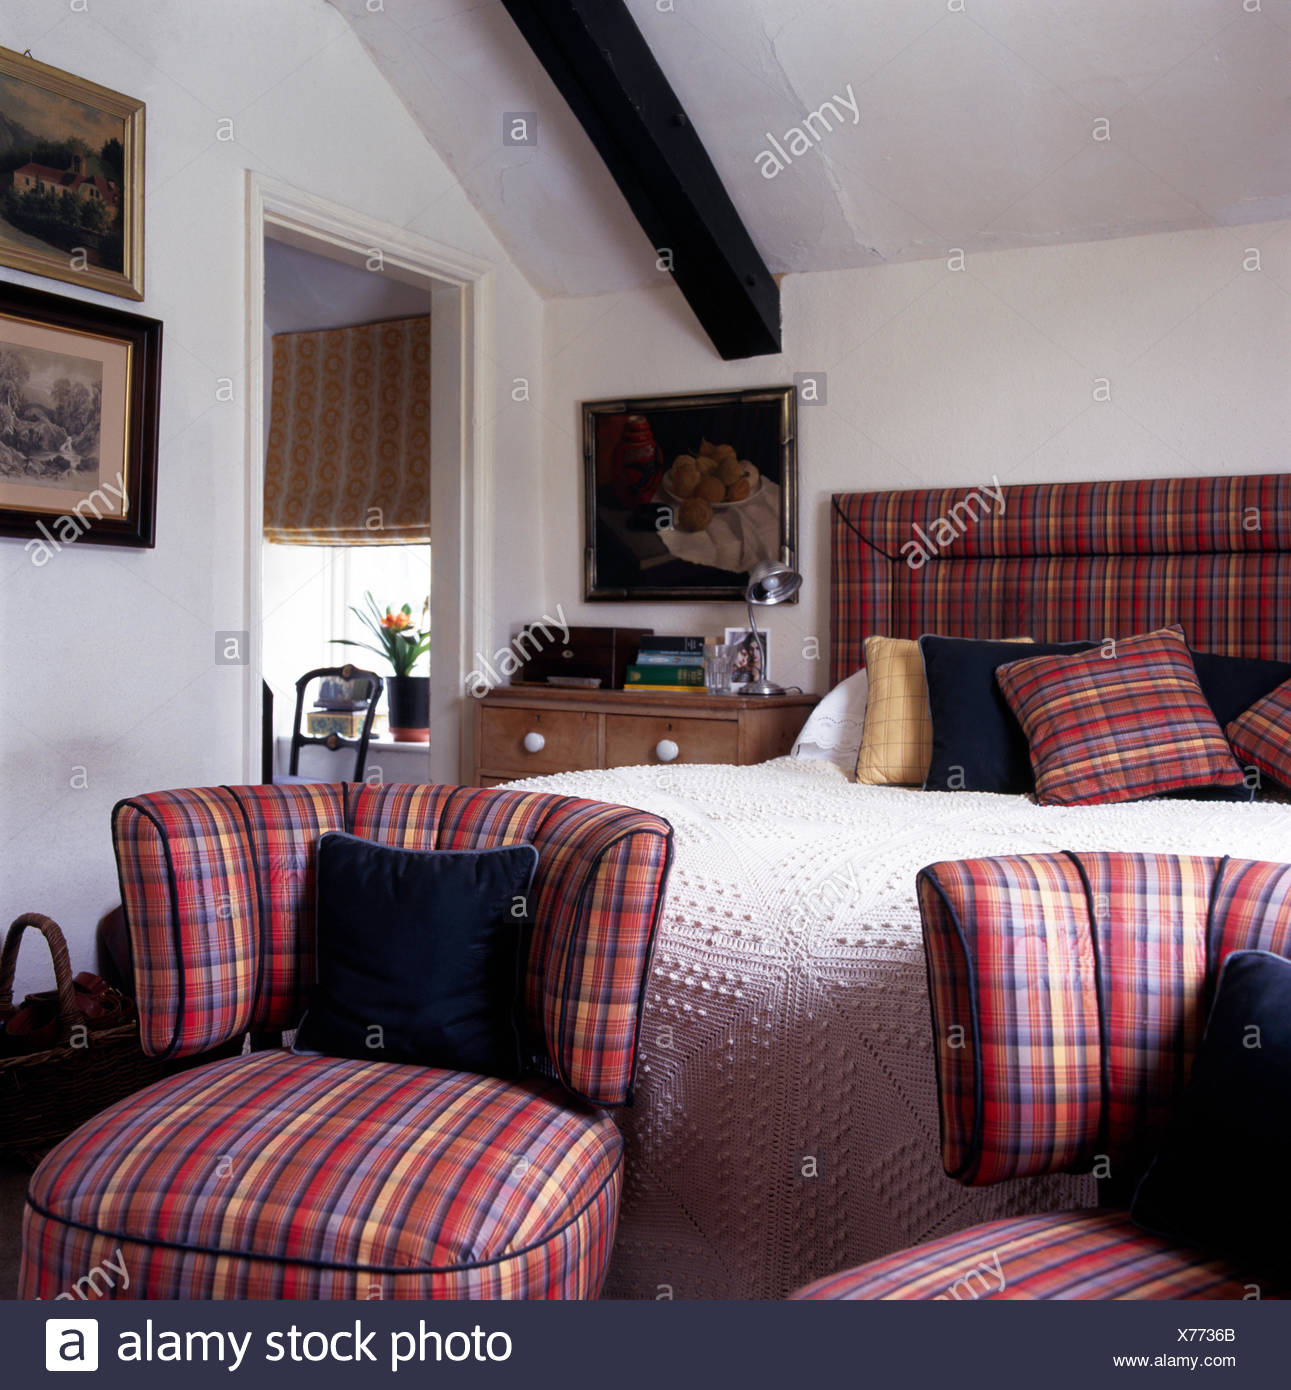 Red Plaid Upholstered Chairs At The Foot Of Bed With A Cream Crocheted  Bedspread In White Attic Bedroom